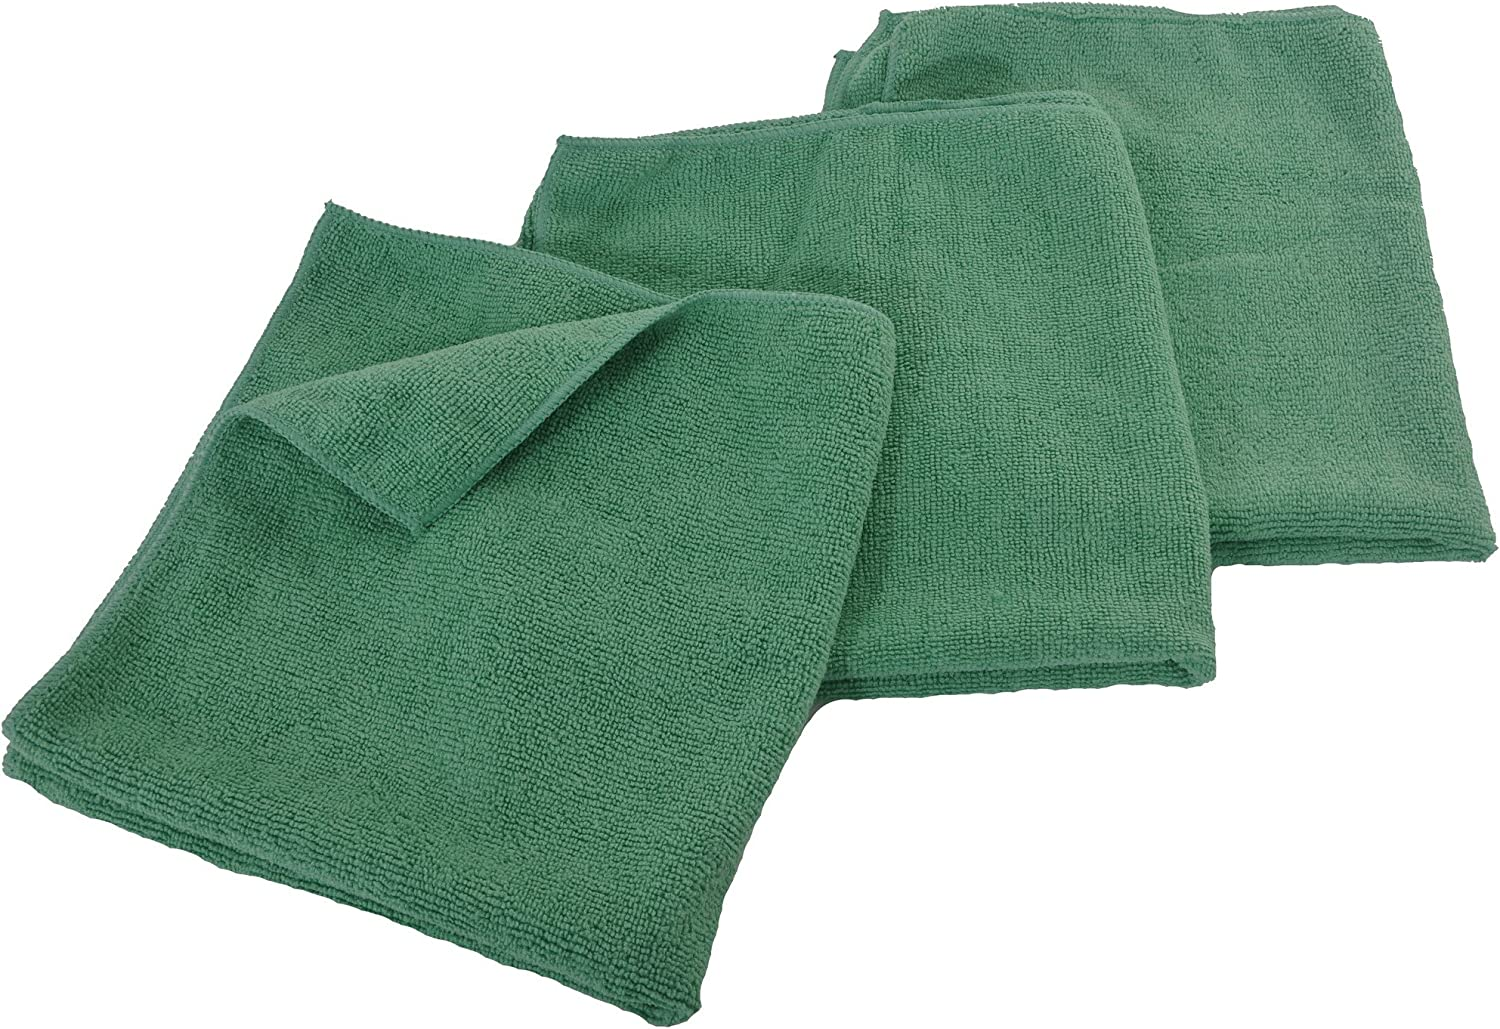 Eurow Microfiber 16 x 16in 300 Cleaning Save money High quality Towels Green GSM 3-Pack